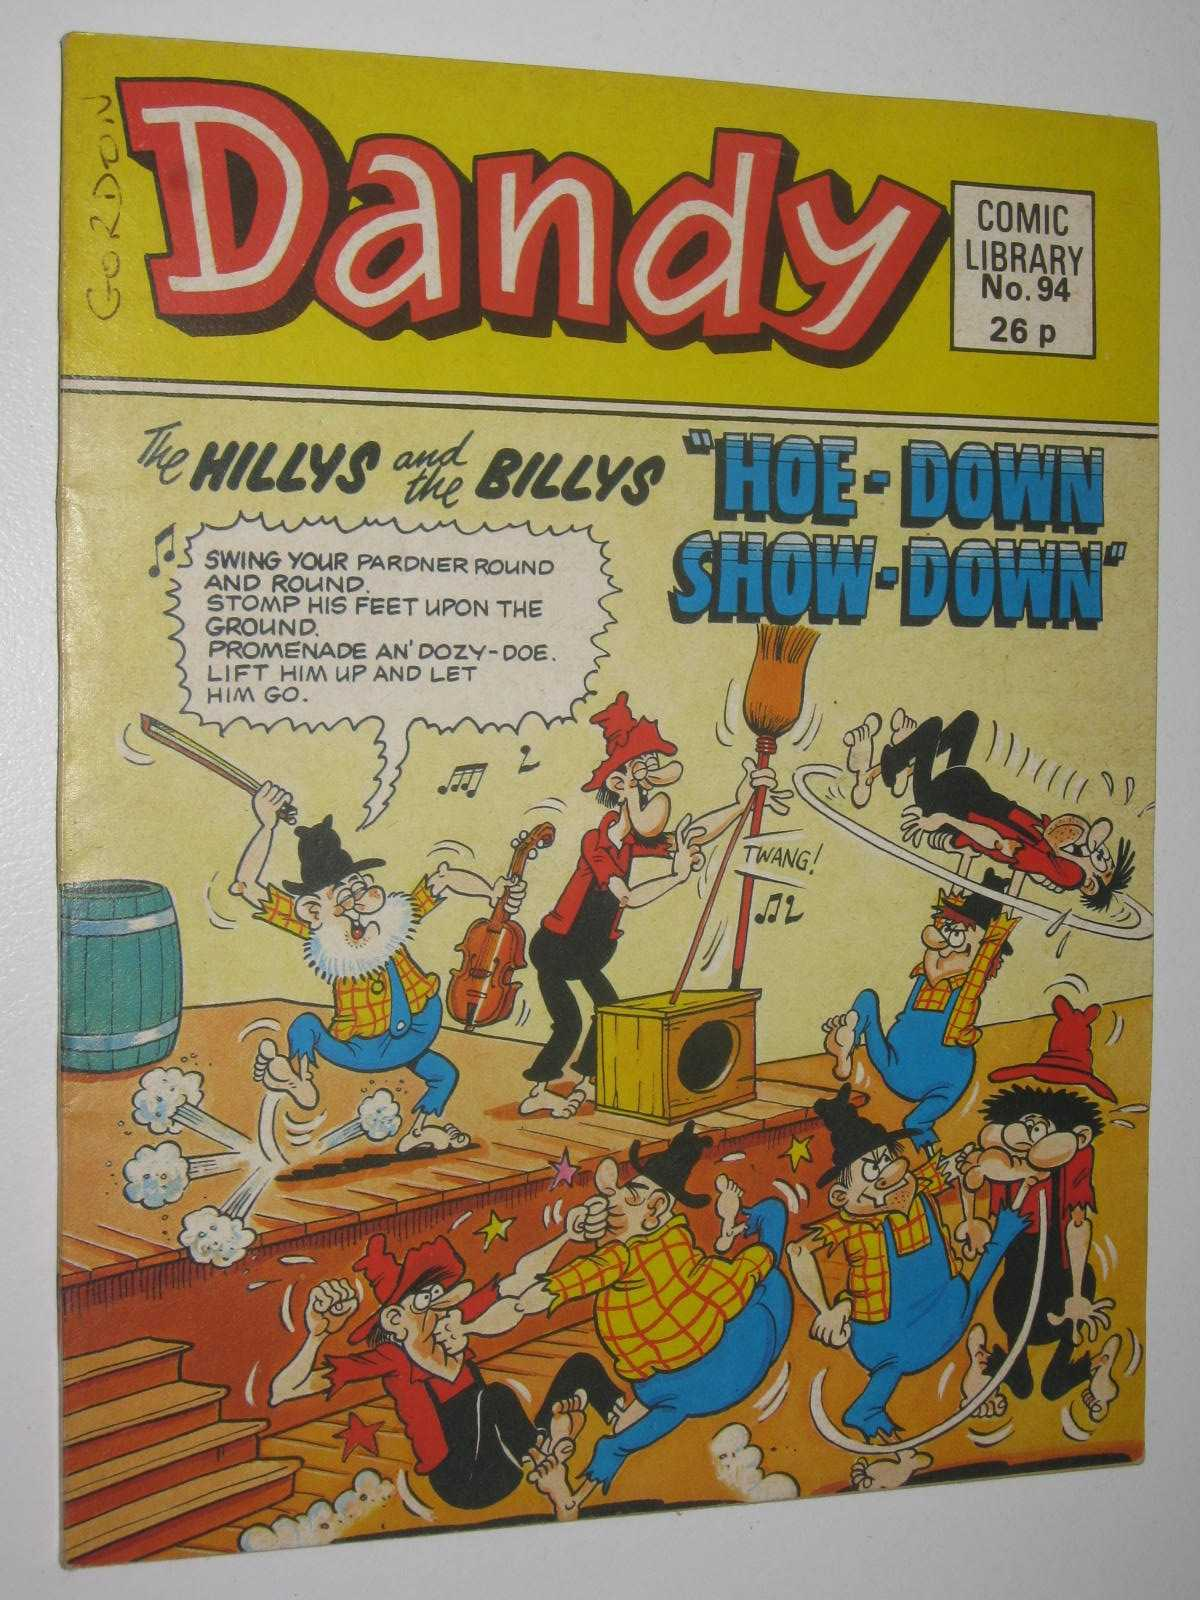 """Image for The Hillys nad the Billys in """"Hoe-Down Show-Down"""" - Dandy Comic Library #94"""